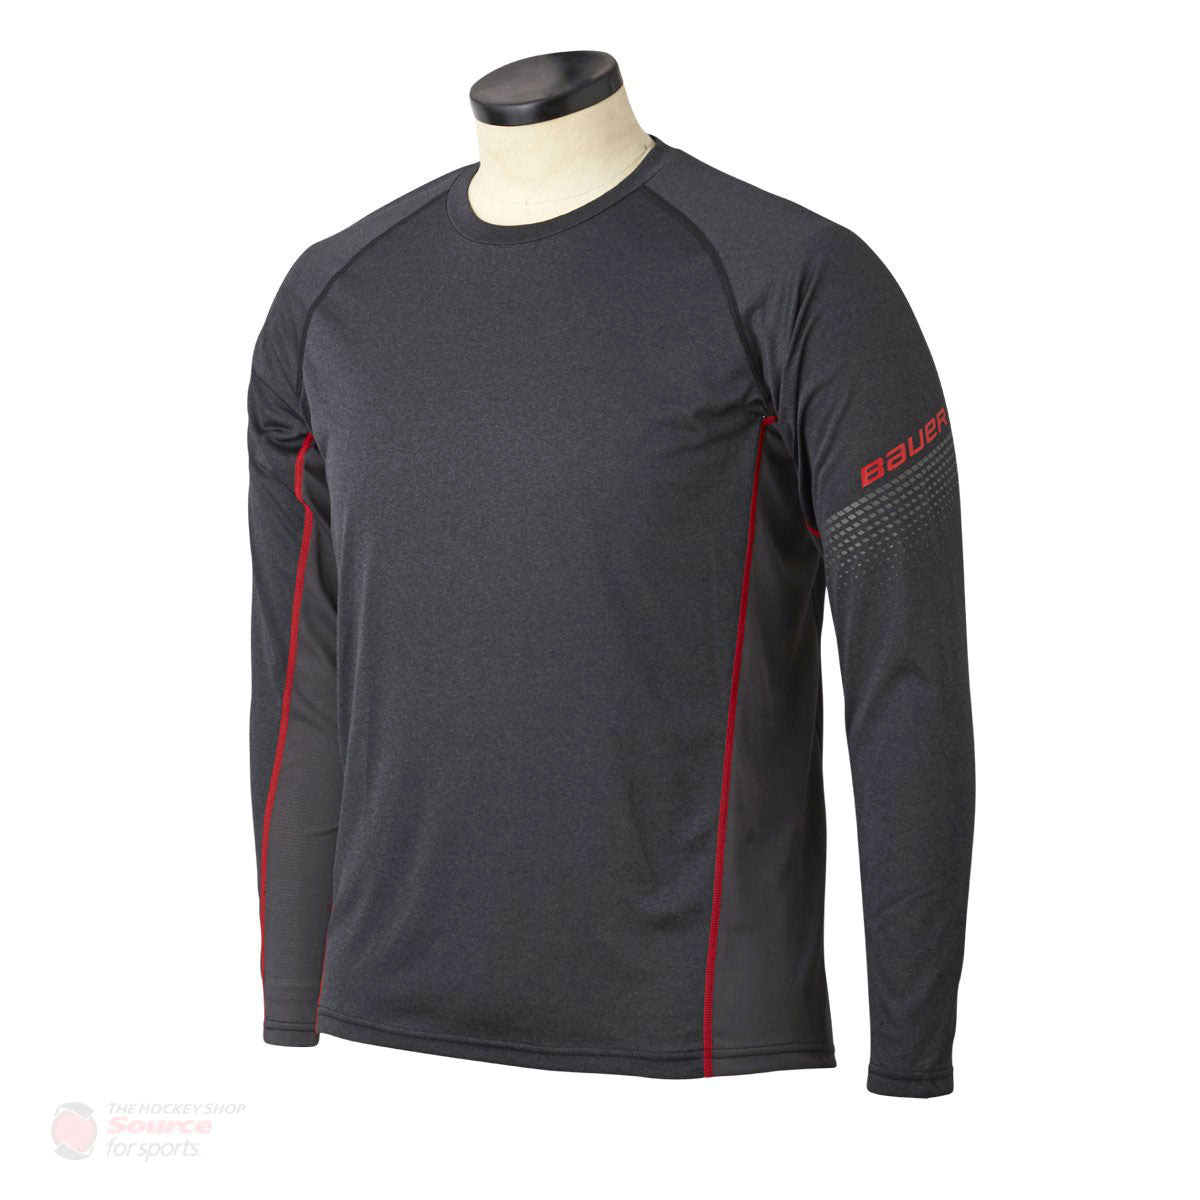 Bauer Essential Longsleeve Junior Baselayer Shirt